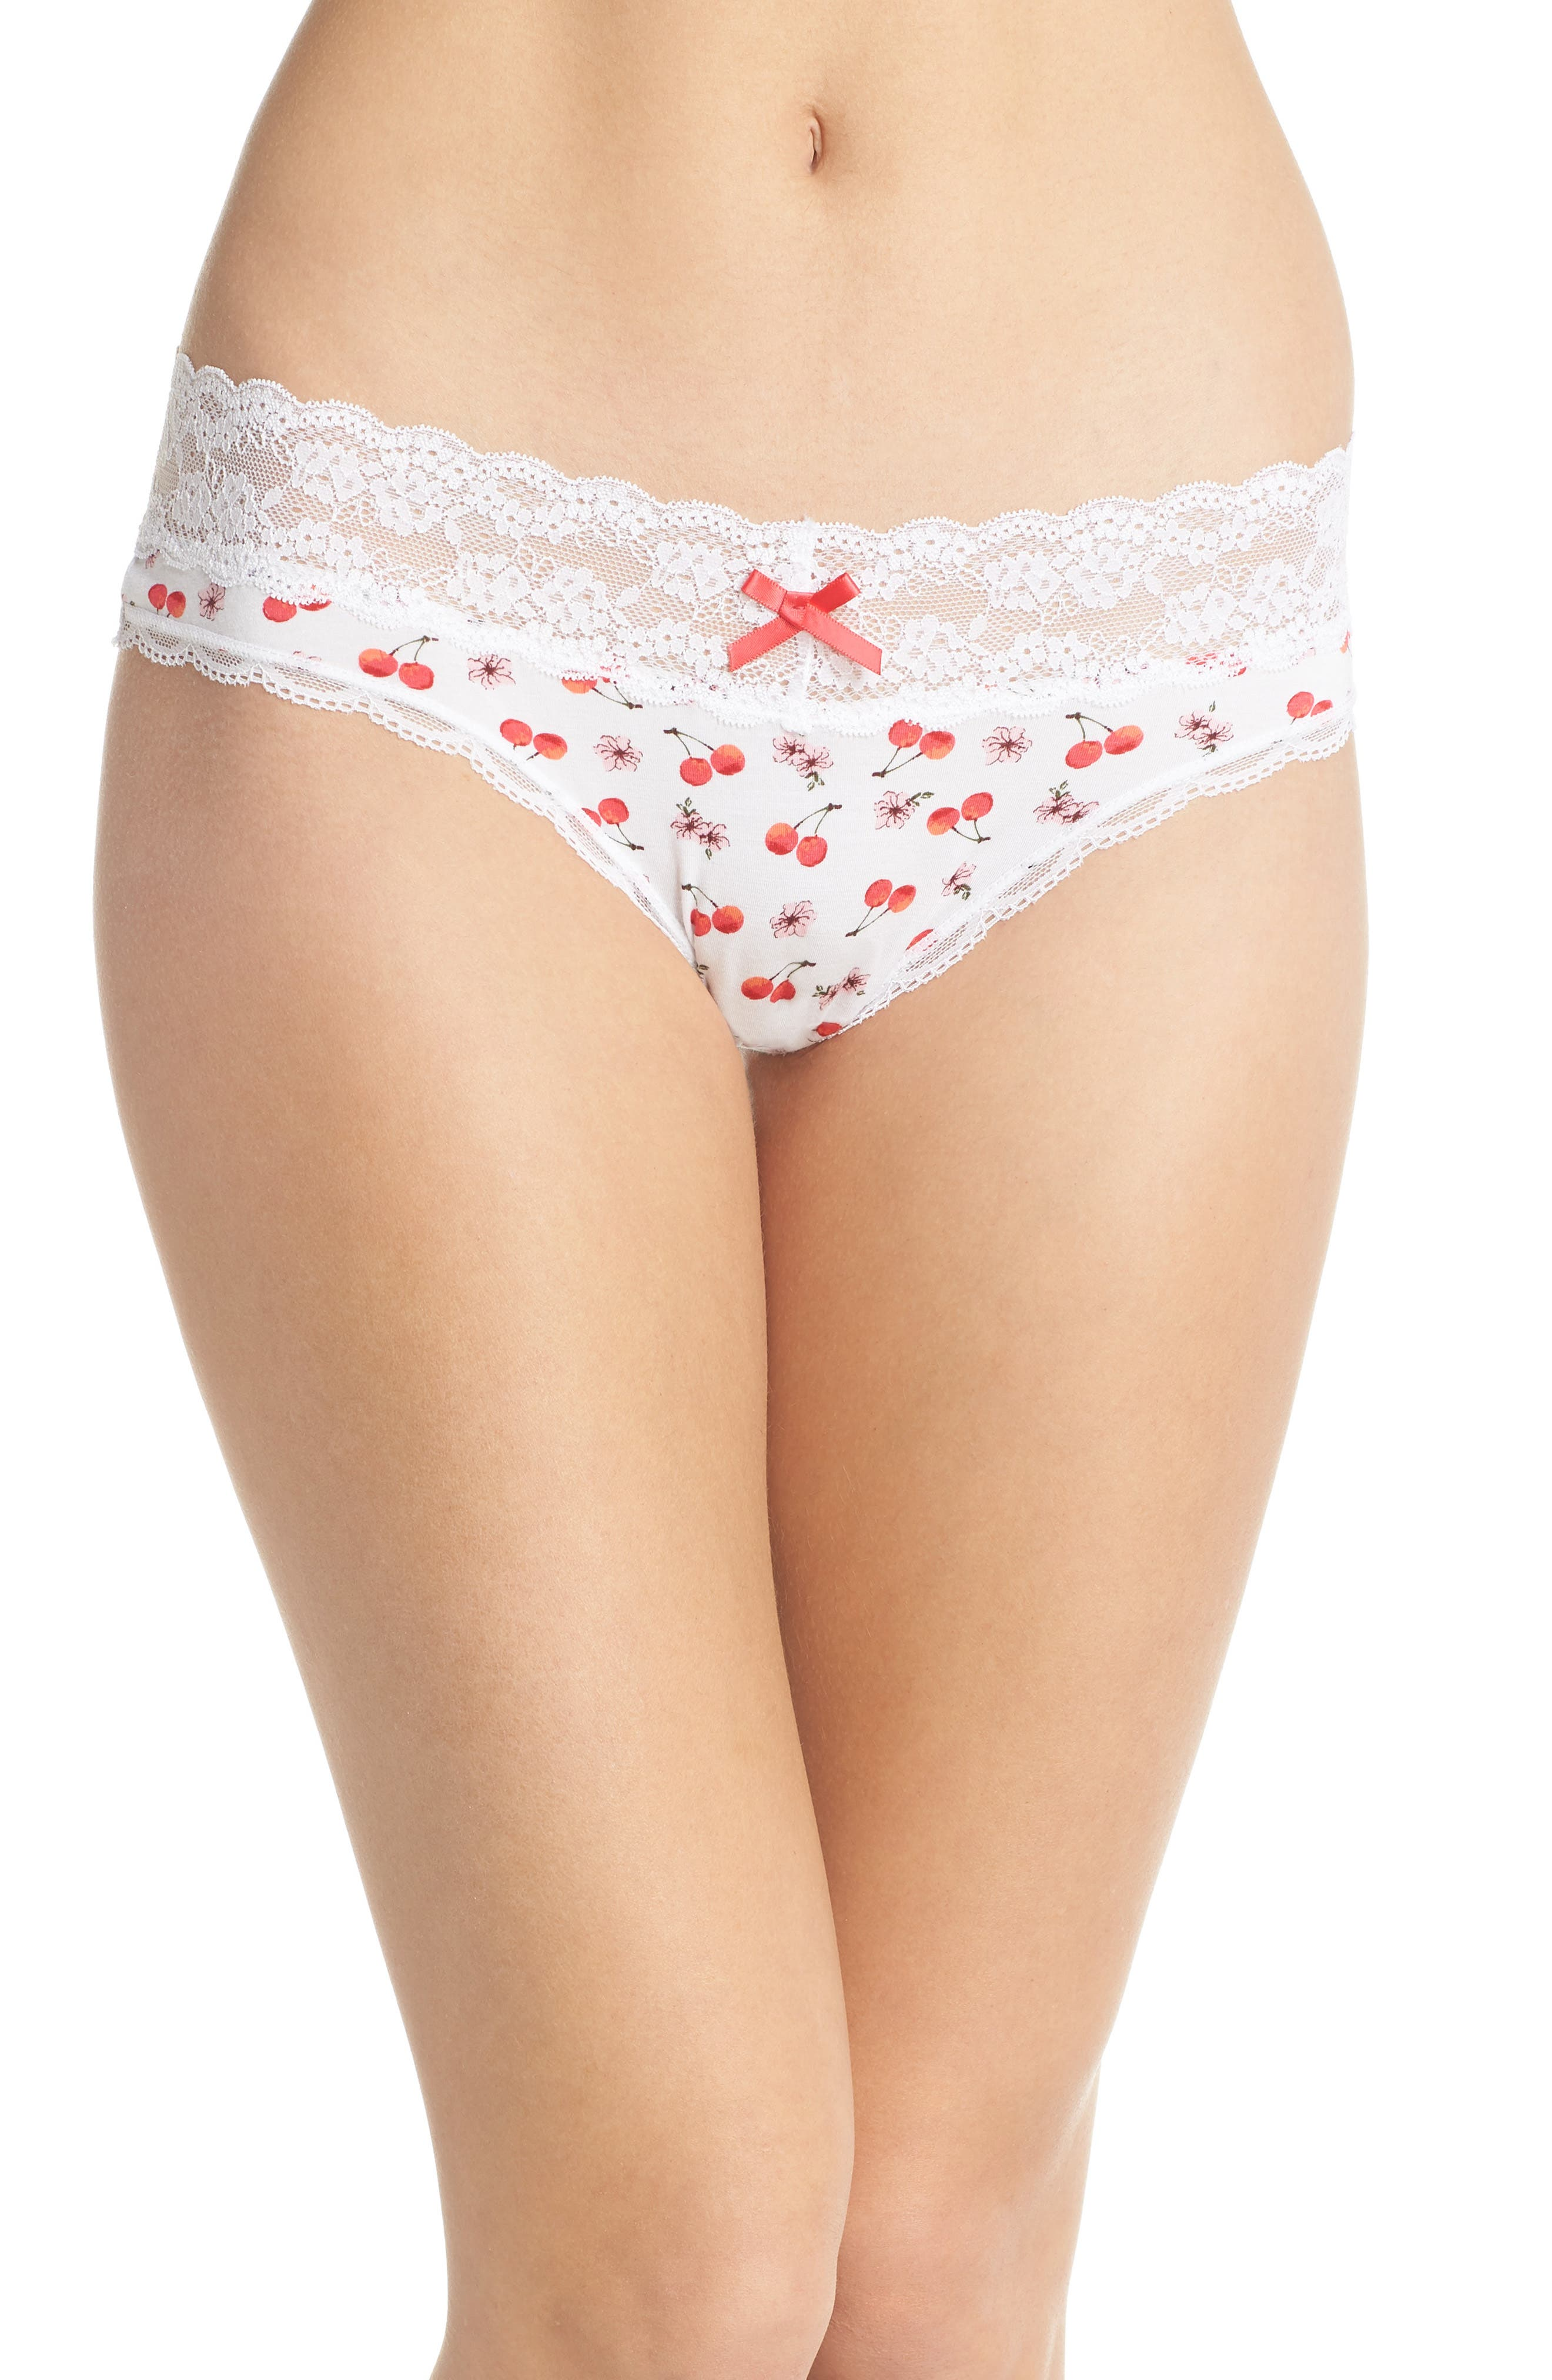 Lace Trim Low Rise Thong,                             Main thumbnail 1, color,                             White Cherry Blossom